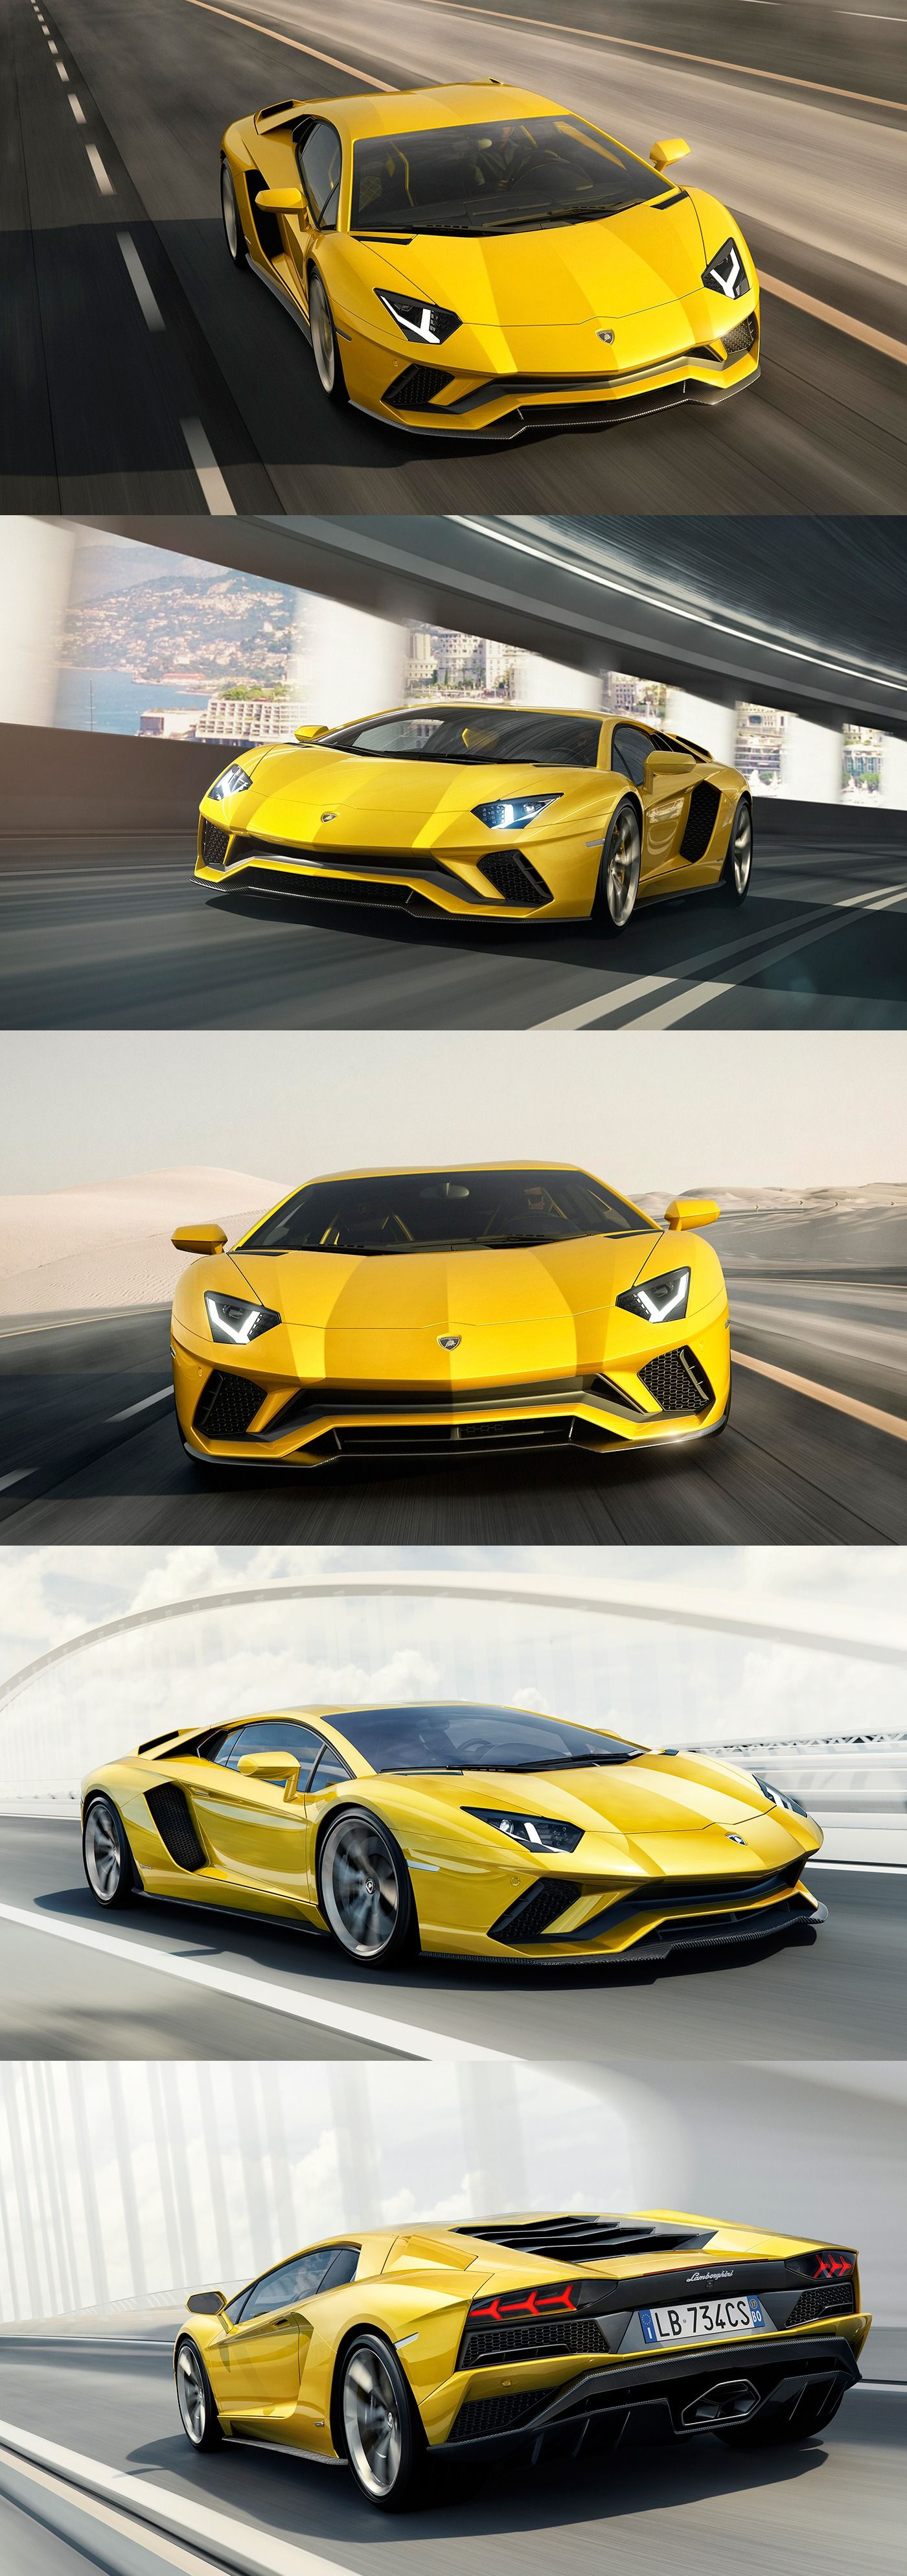 India to Bring Aventador S on March 3 Super